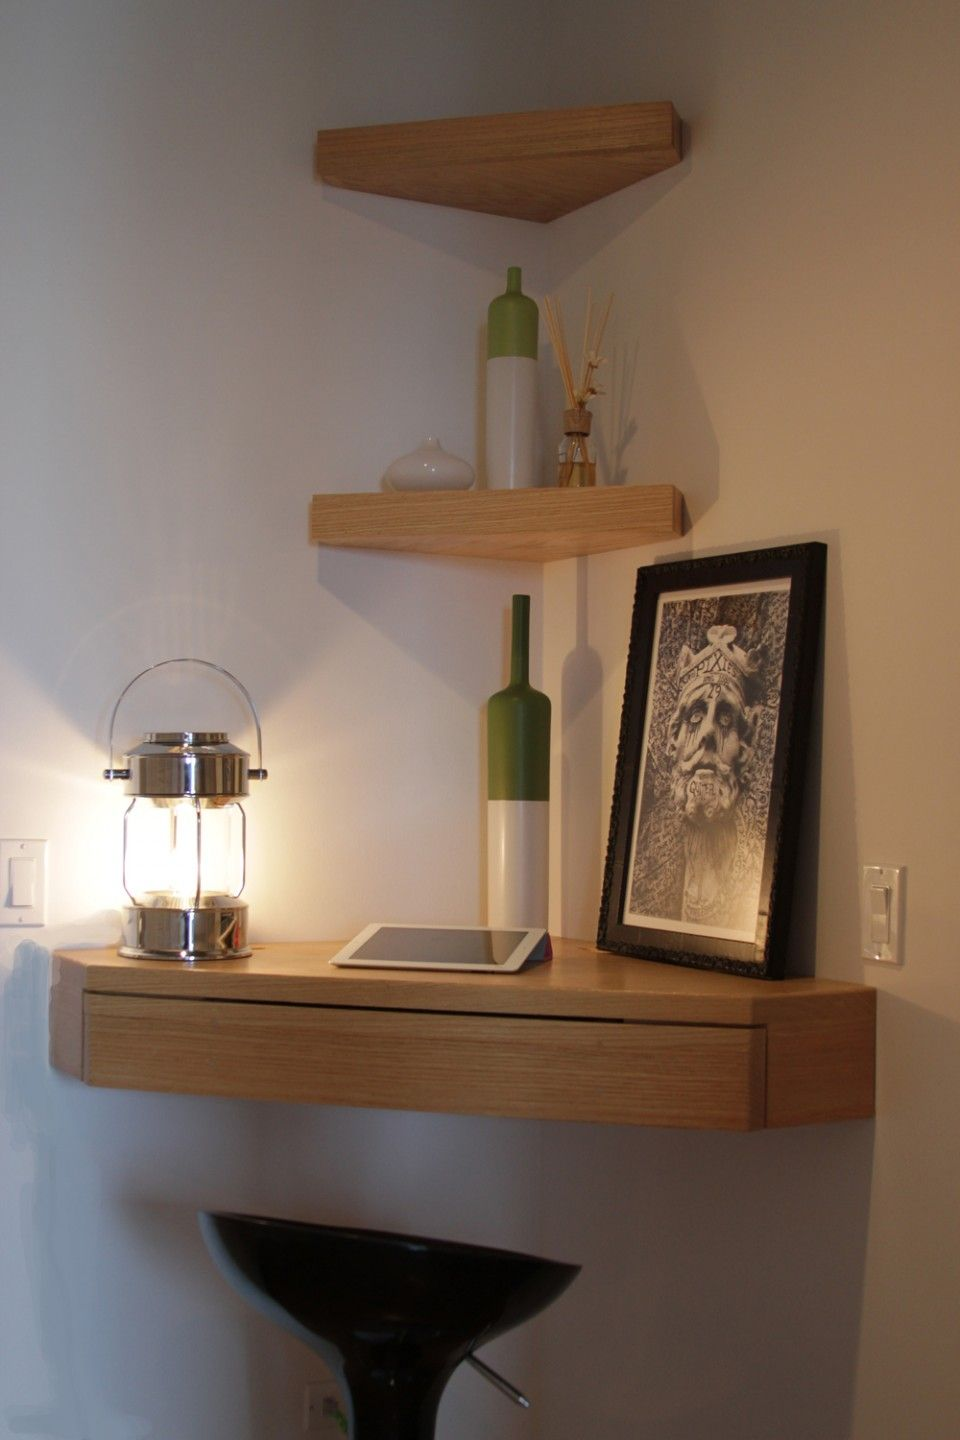 entrancing floating corner shelves design idea oak wood with triangle shelf three levels shape and adjustable closet shelving systems rustic screw supports decorative brass